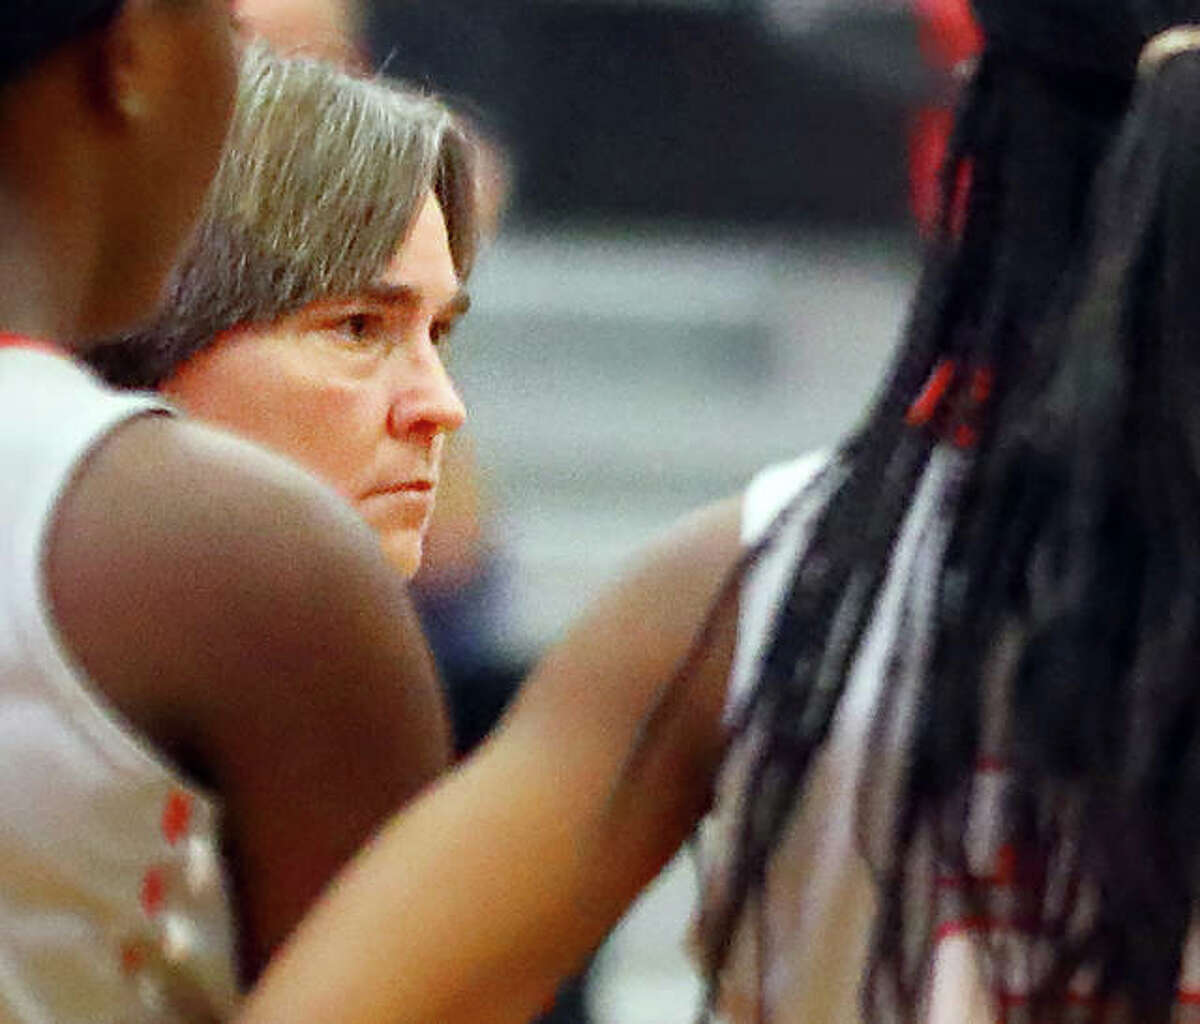 Alton interim girls basketball coach Tammy Talbert is back on the sideline for the Redbirds, stepping in for former coach Jon Marston, who resigned abruptly in July after being hired in March. Talbert has coached Alton, Marquette and Roxana girls basketball teams.